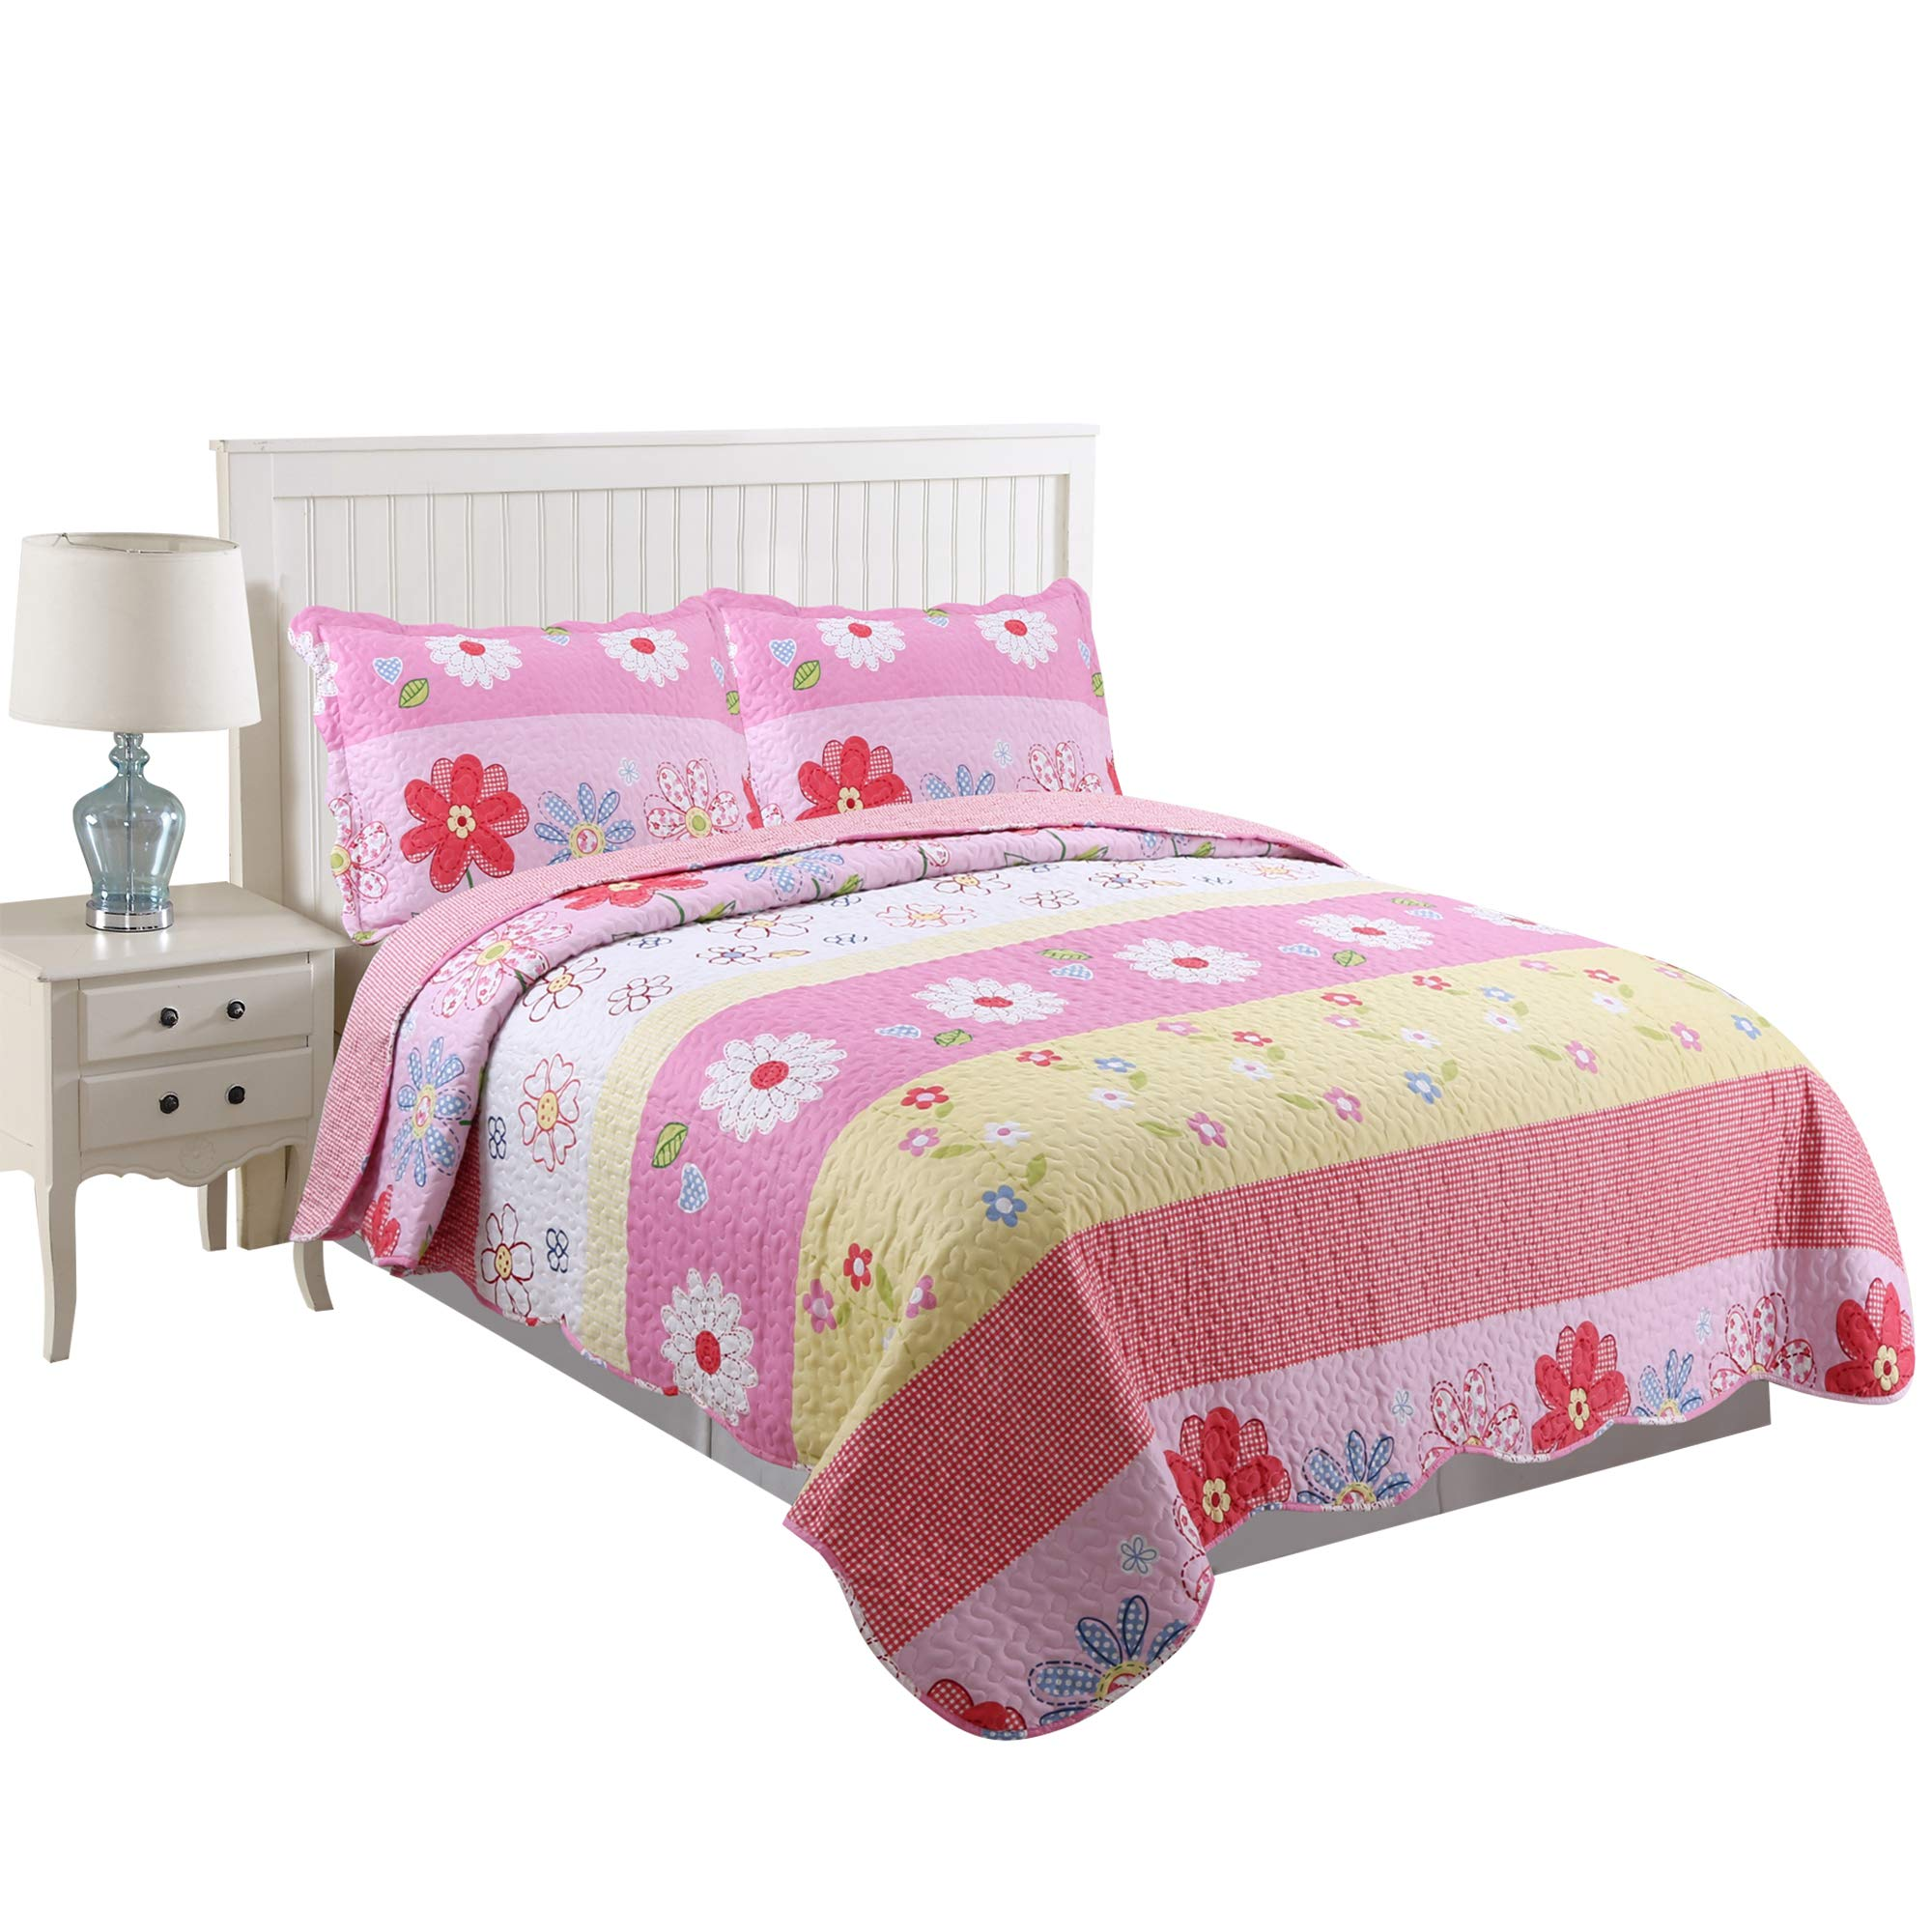 MarCielo 3 Piece Kids Bedspread Quilts Set Throw Blanket for Teens Girls Bed Printed Bedding Coverlet, Full Size, Pink Floral (Full) by MarCielo